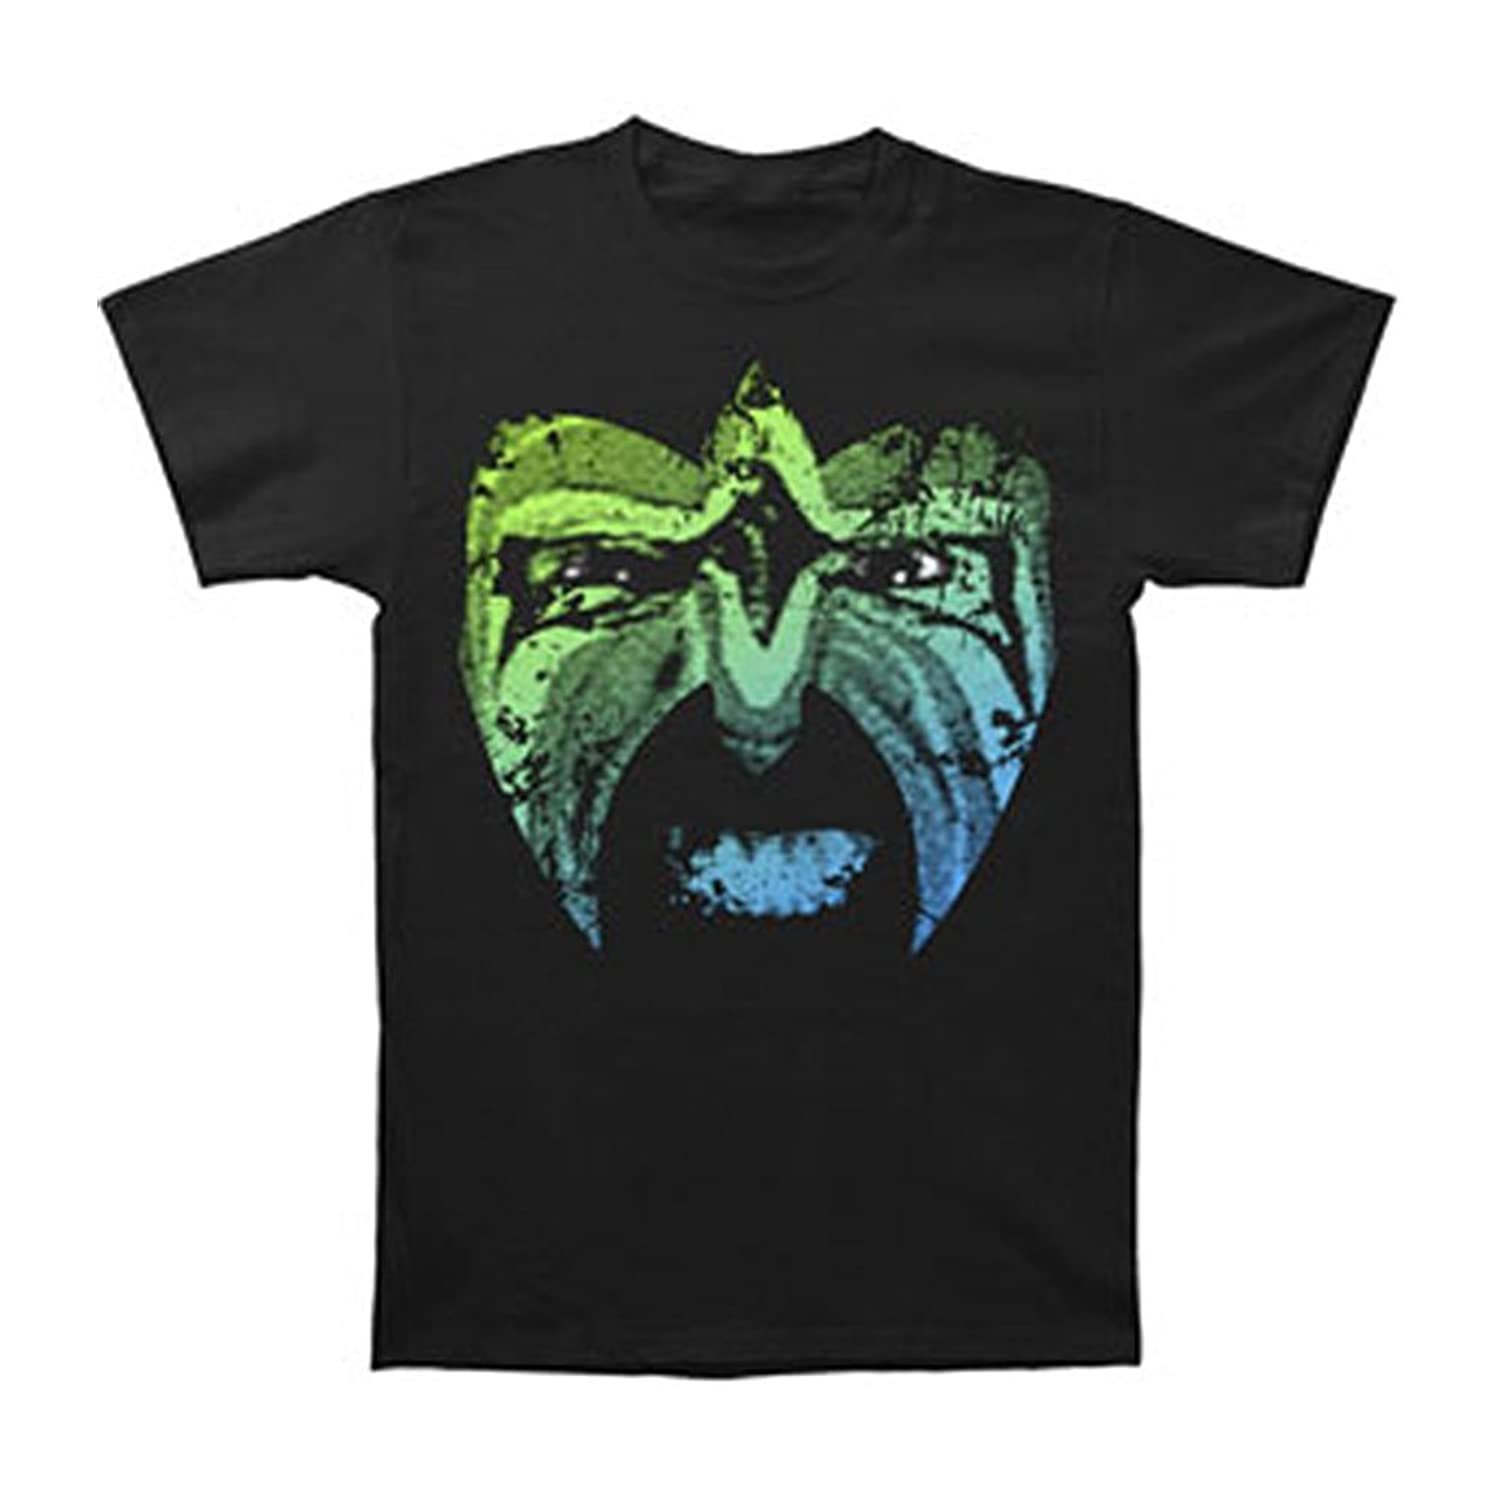 Michaner Walosde Ultimate Warrior Men's Rage Face Slim Fit T-shirt Black